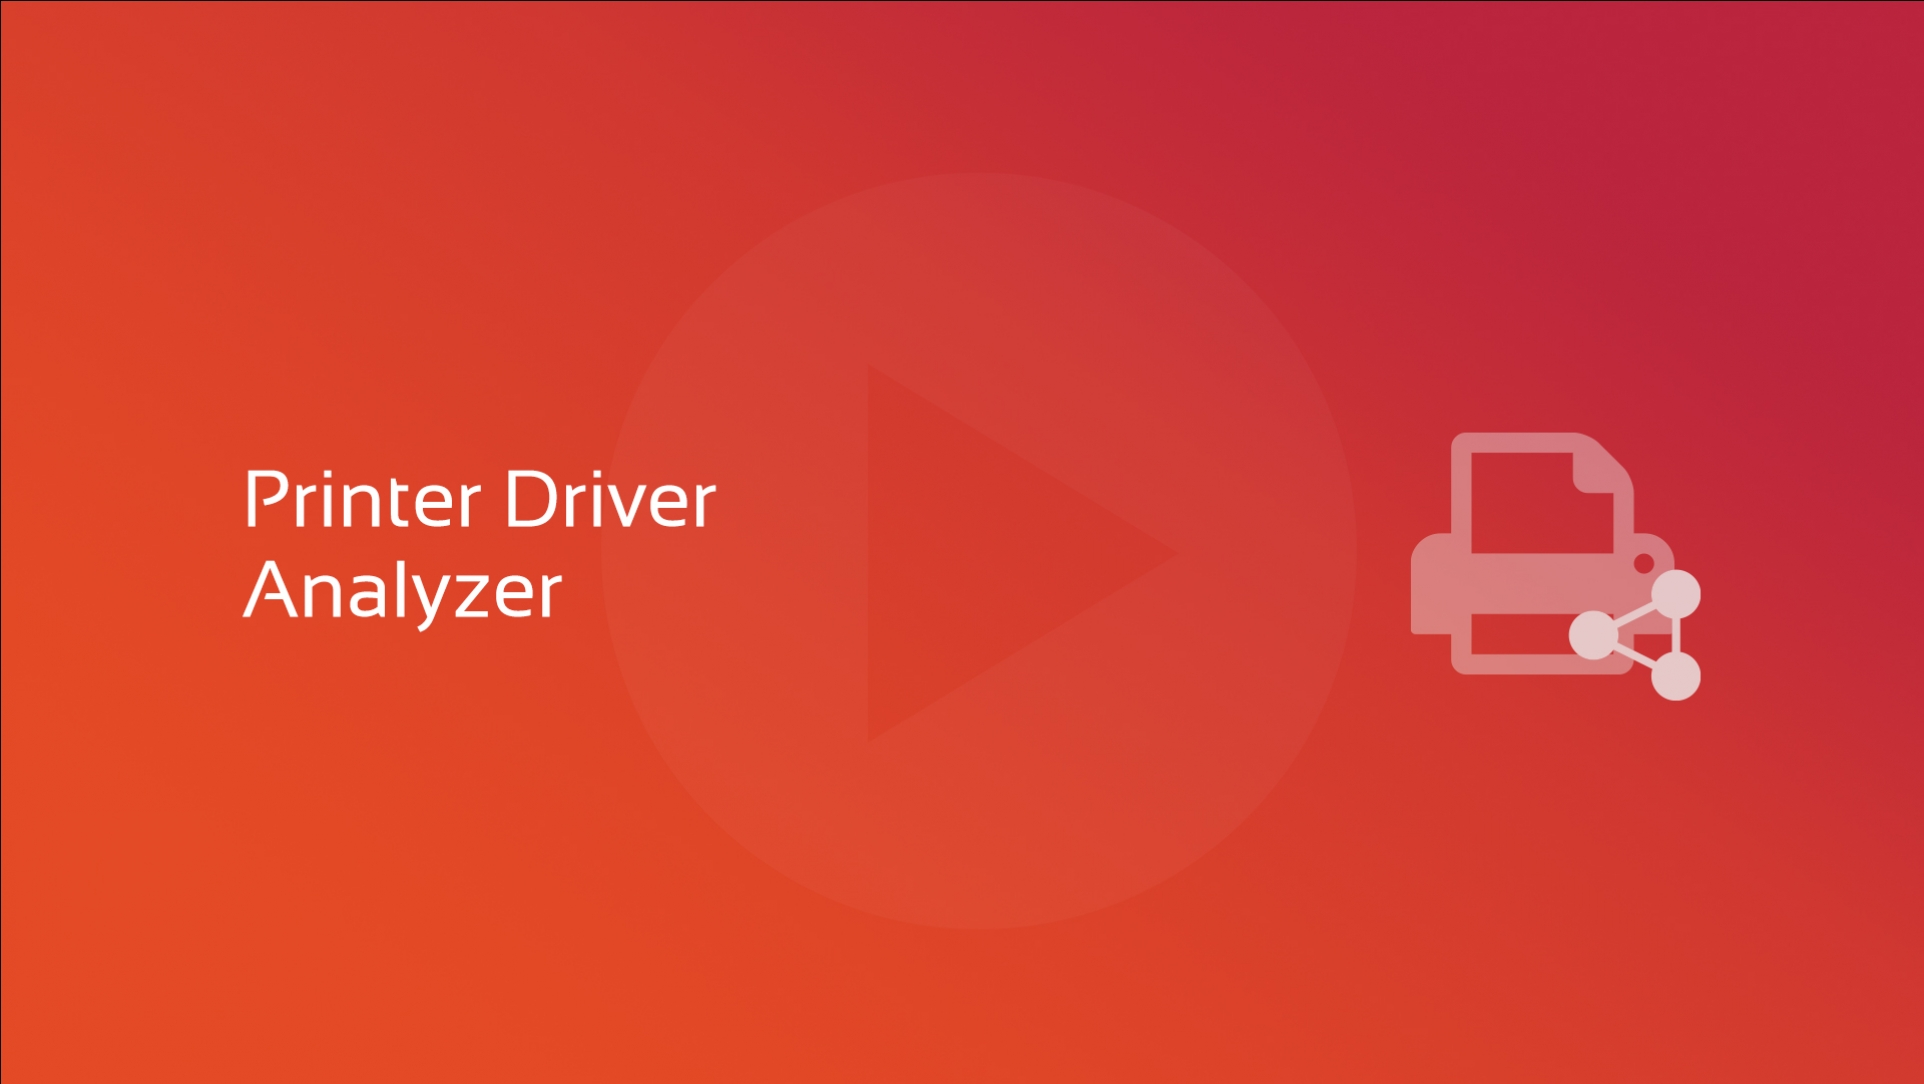 Printer Driver Analyzer